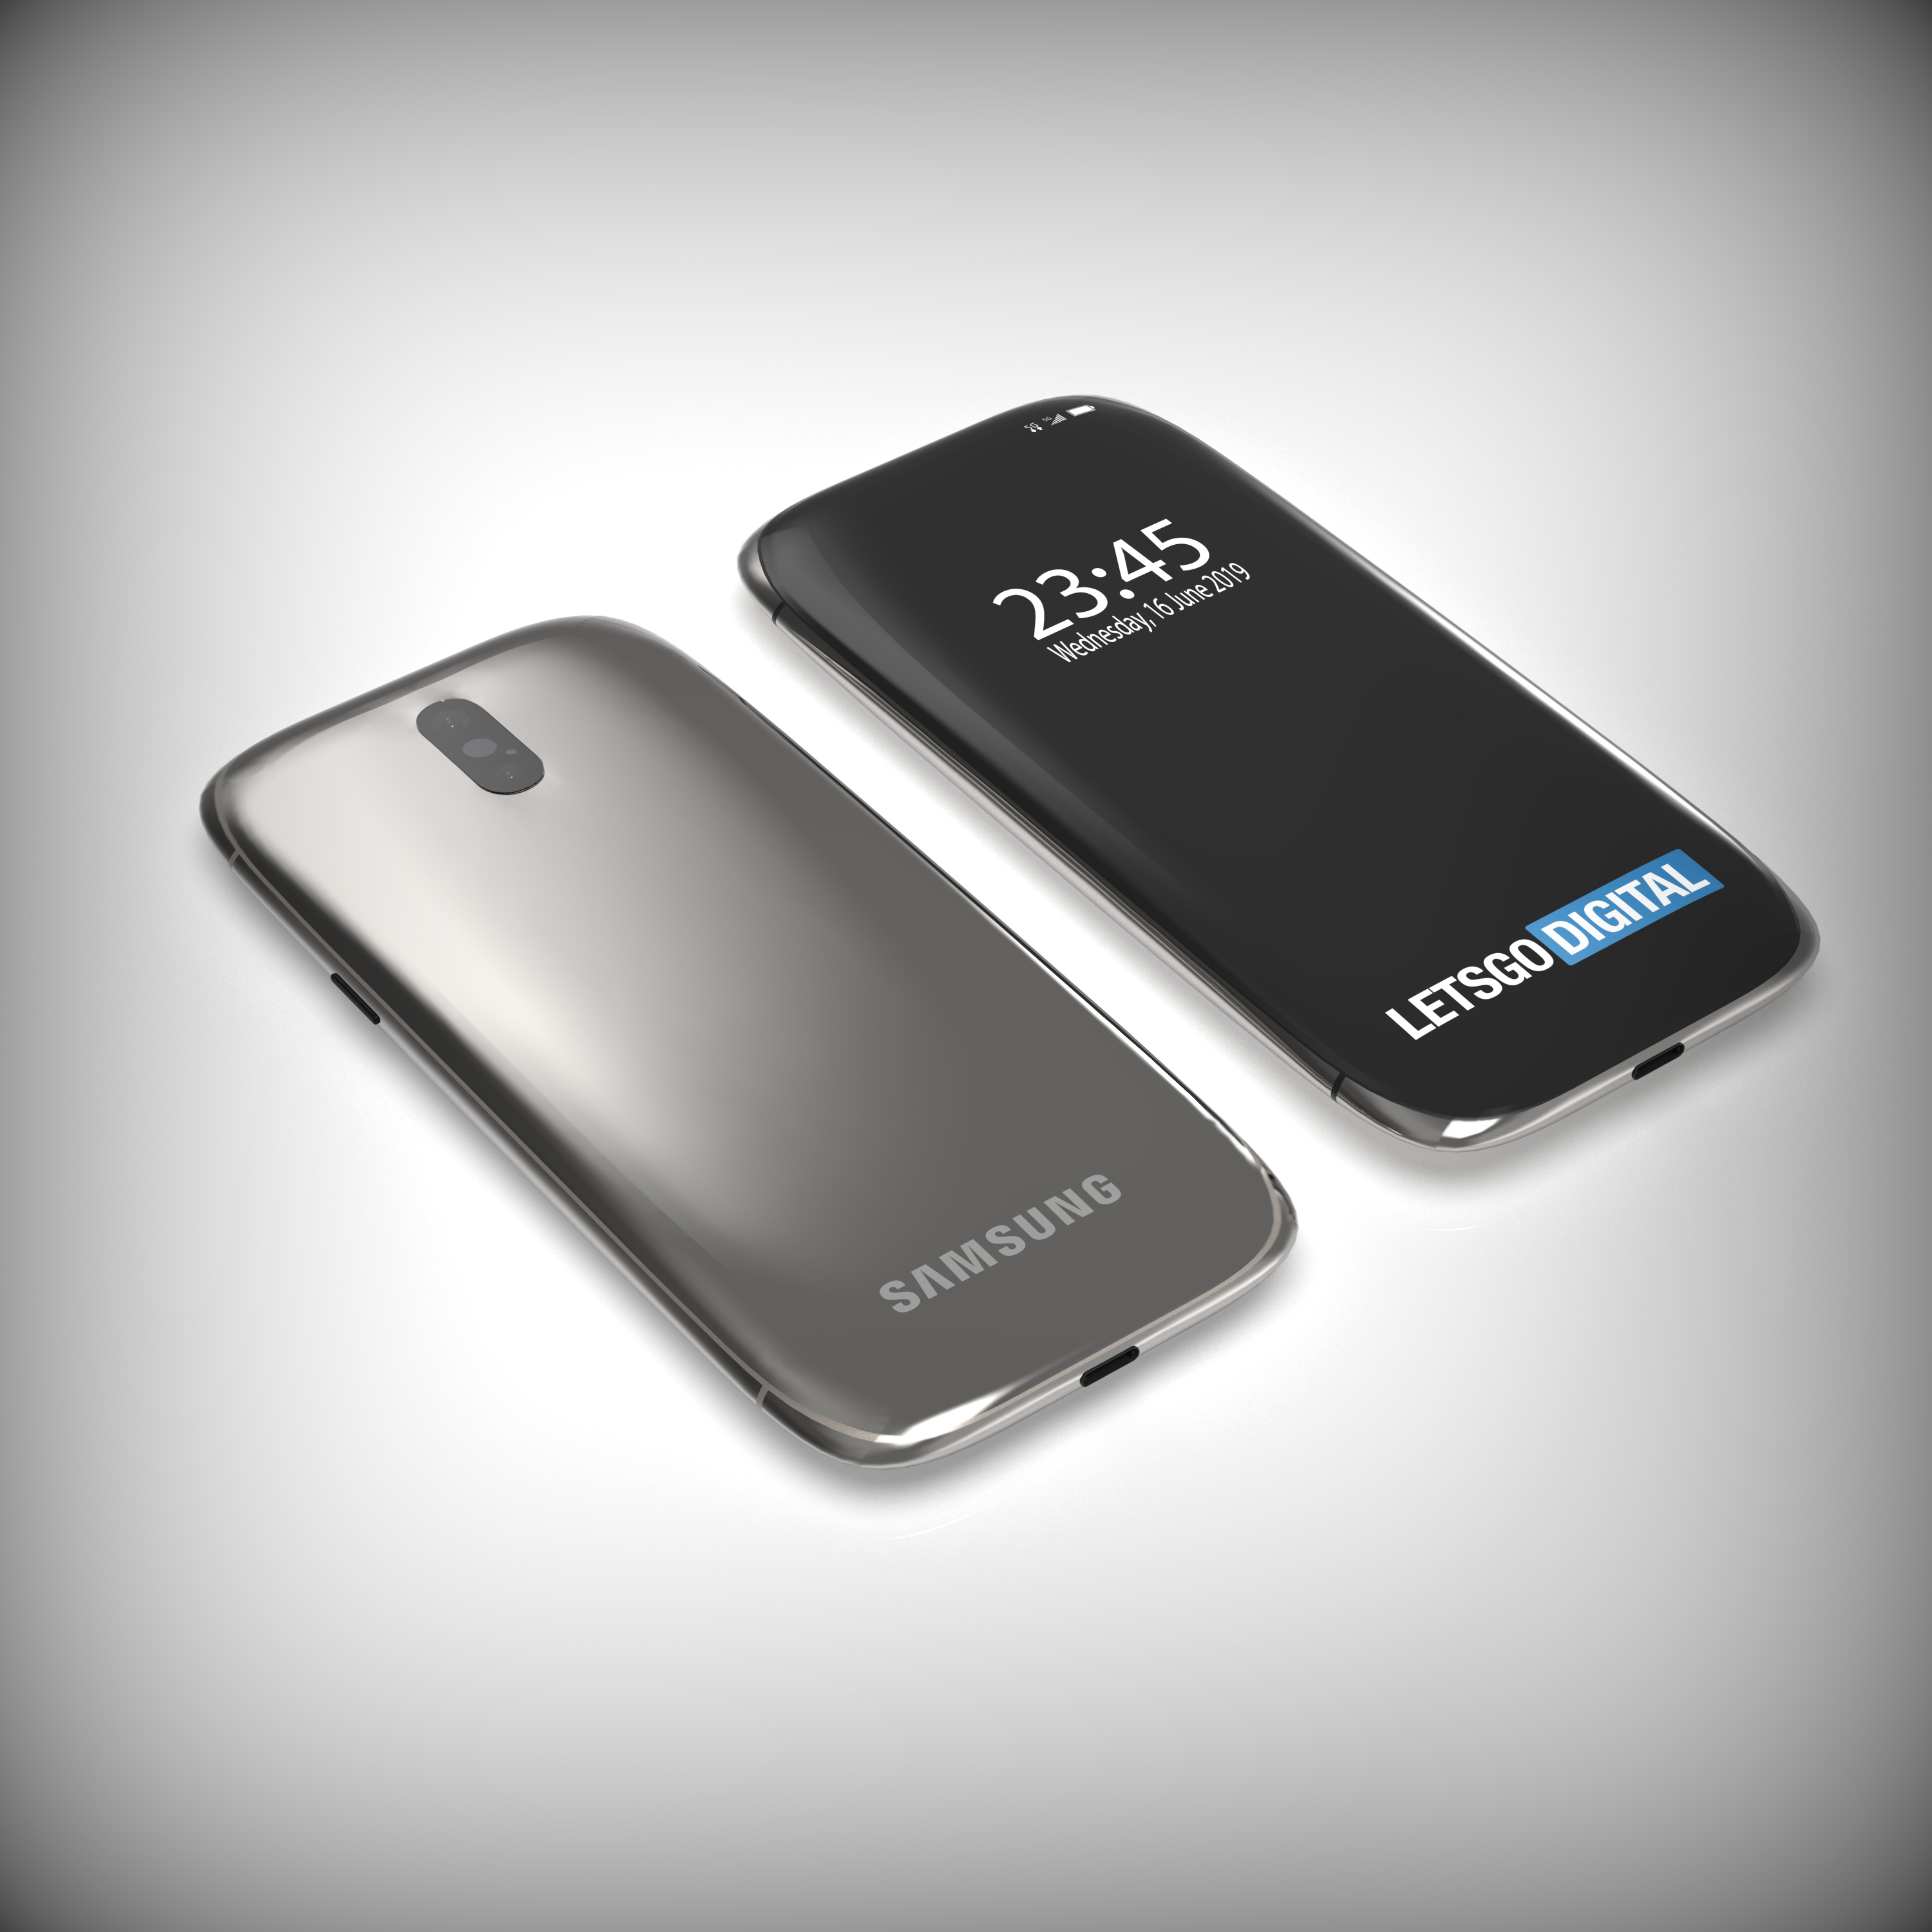 Samsung Galaxy S11 smartphone with 3D curved display